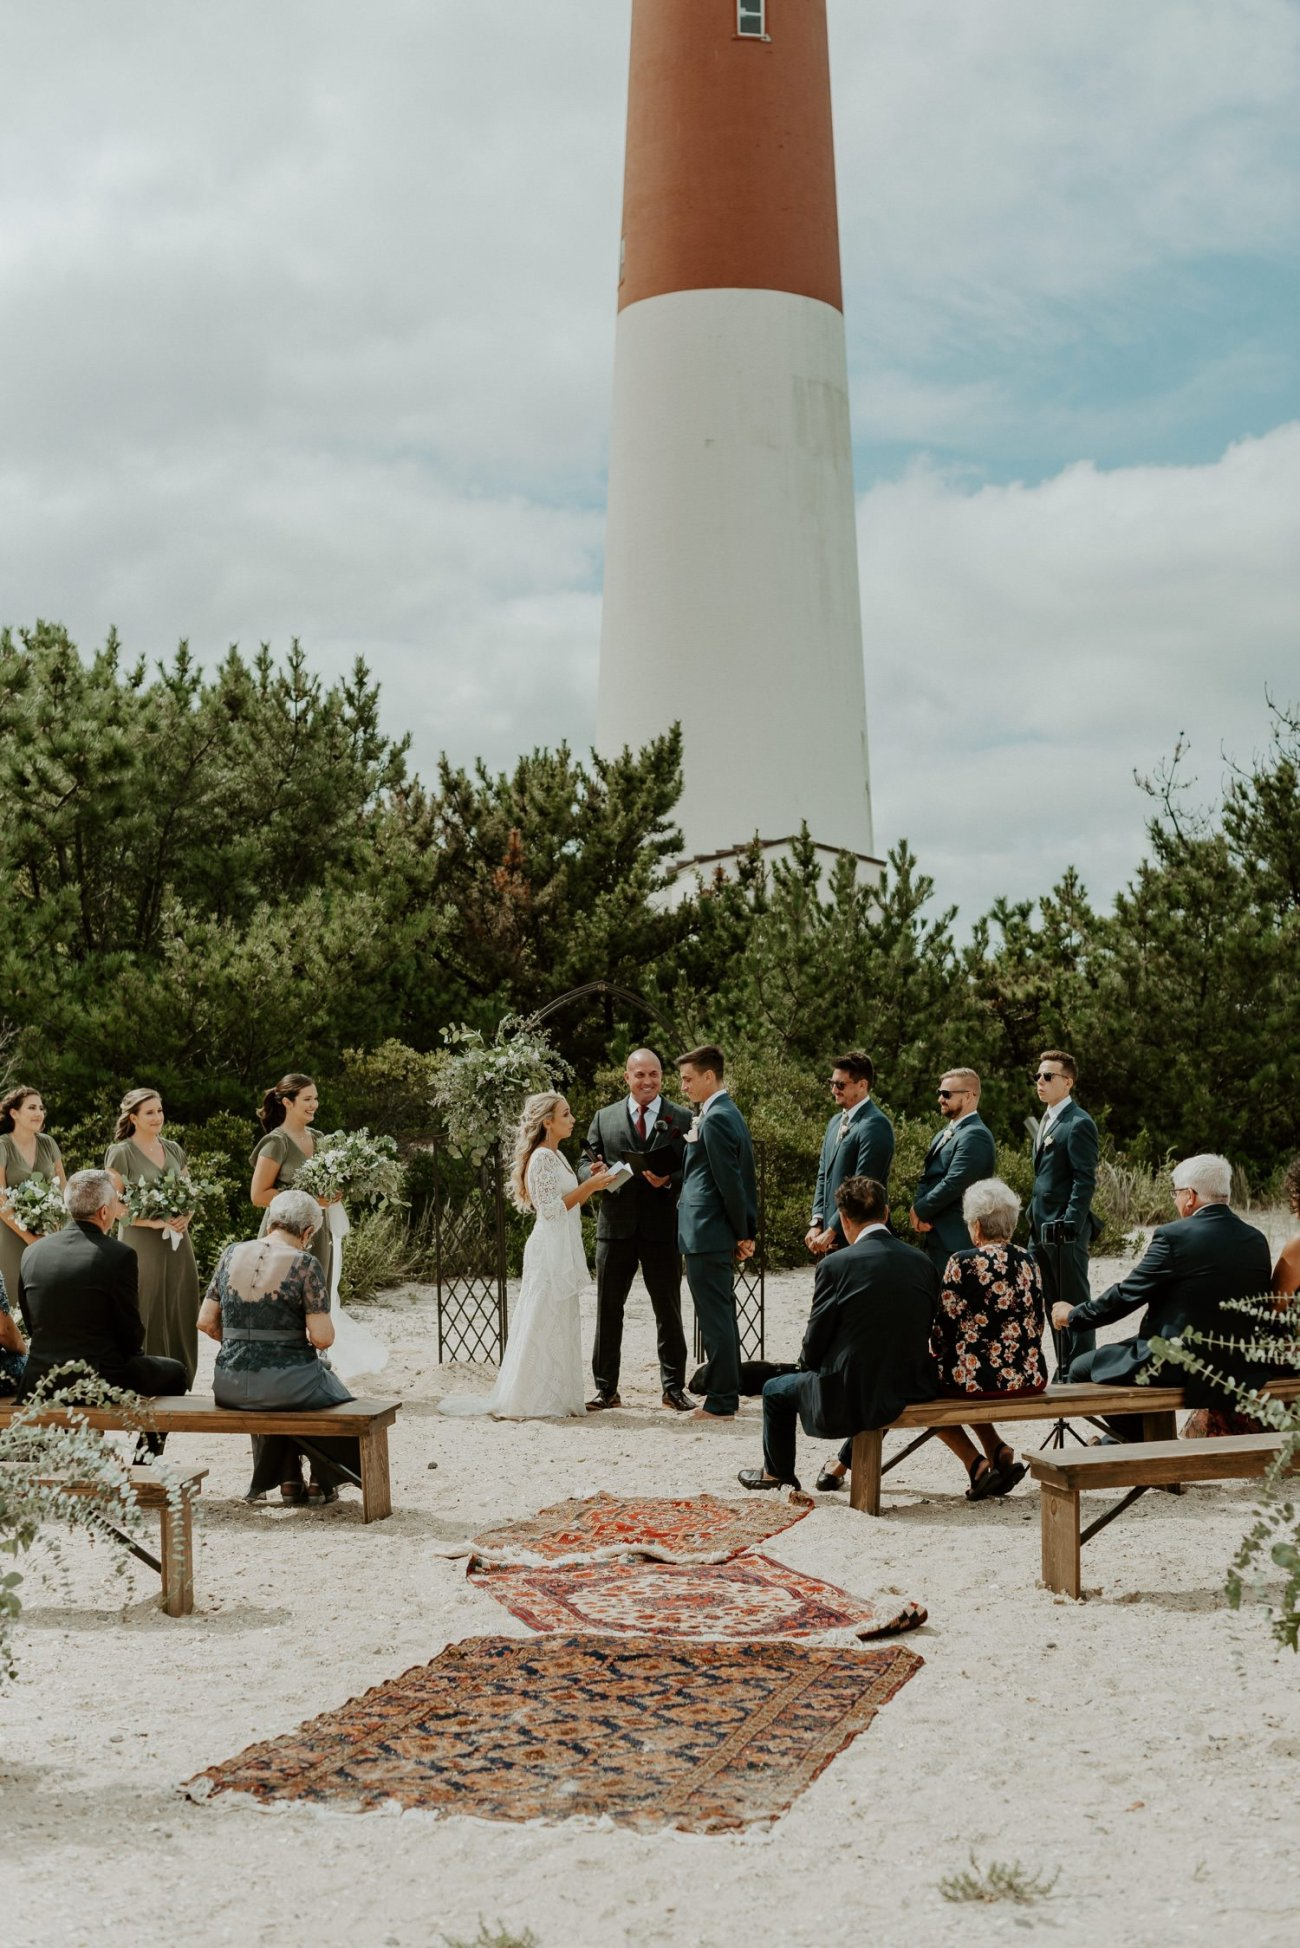 Long Beach Island Wedding Barnegat Lighthouse Wedding Ceremony New Jersey Wedding Anais Possamai Photography Oregon Wedding Photographer 0037